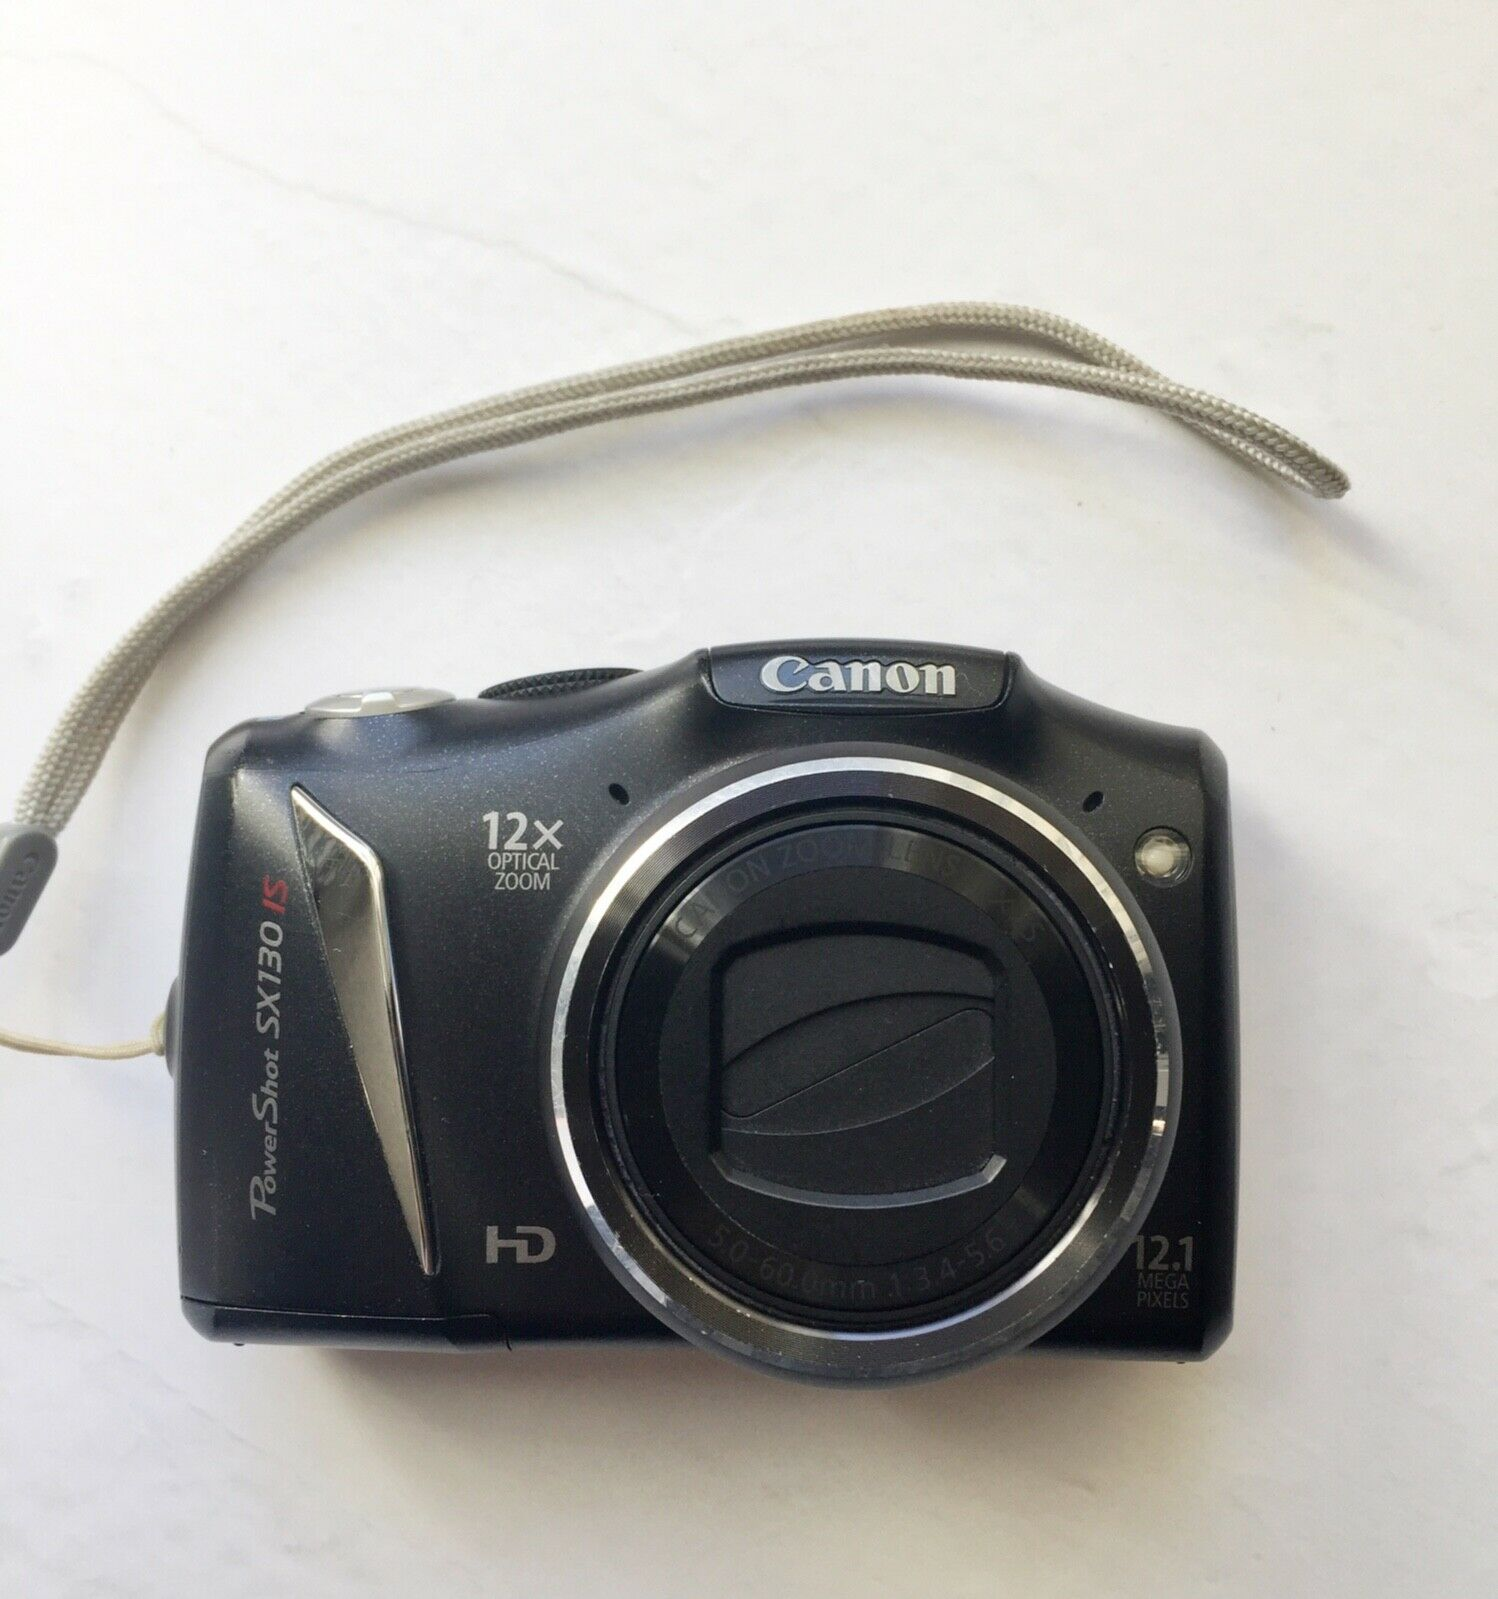 USED CANON Digital CAMERA POWERSHOT SX130 IS 12.1MP Digital 12x Optical Zoom + 8GB Memory Card Fully Tested image